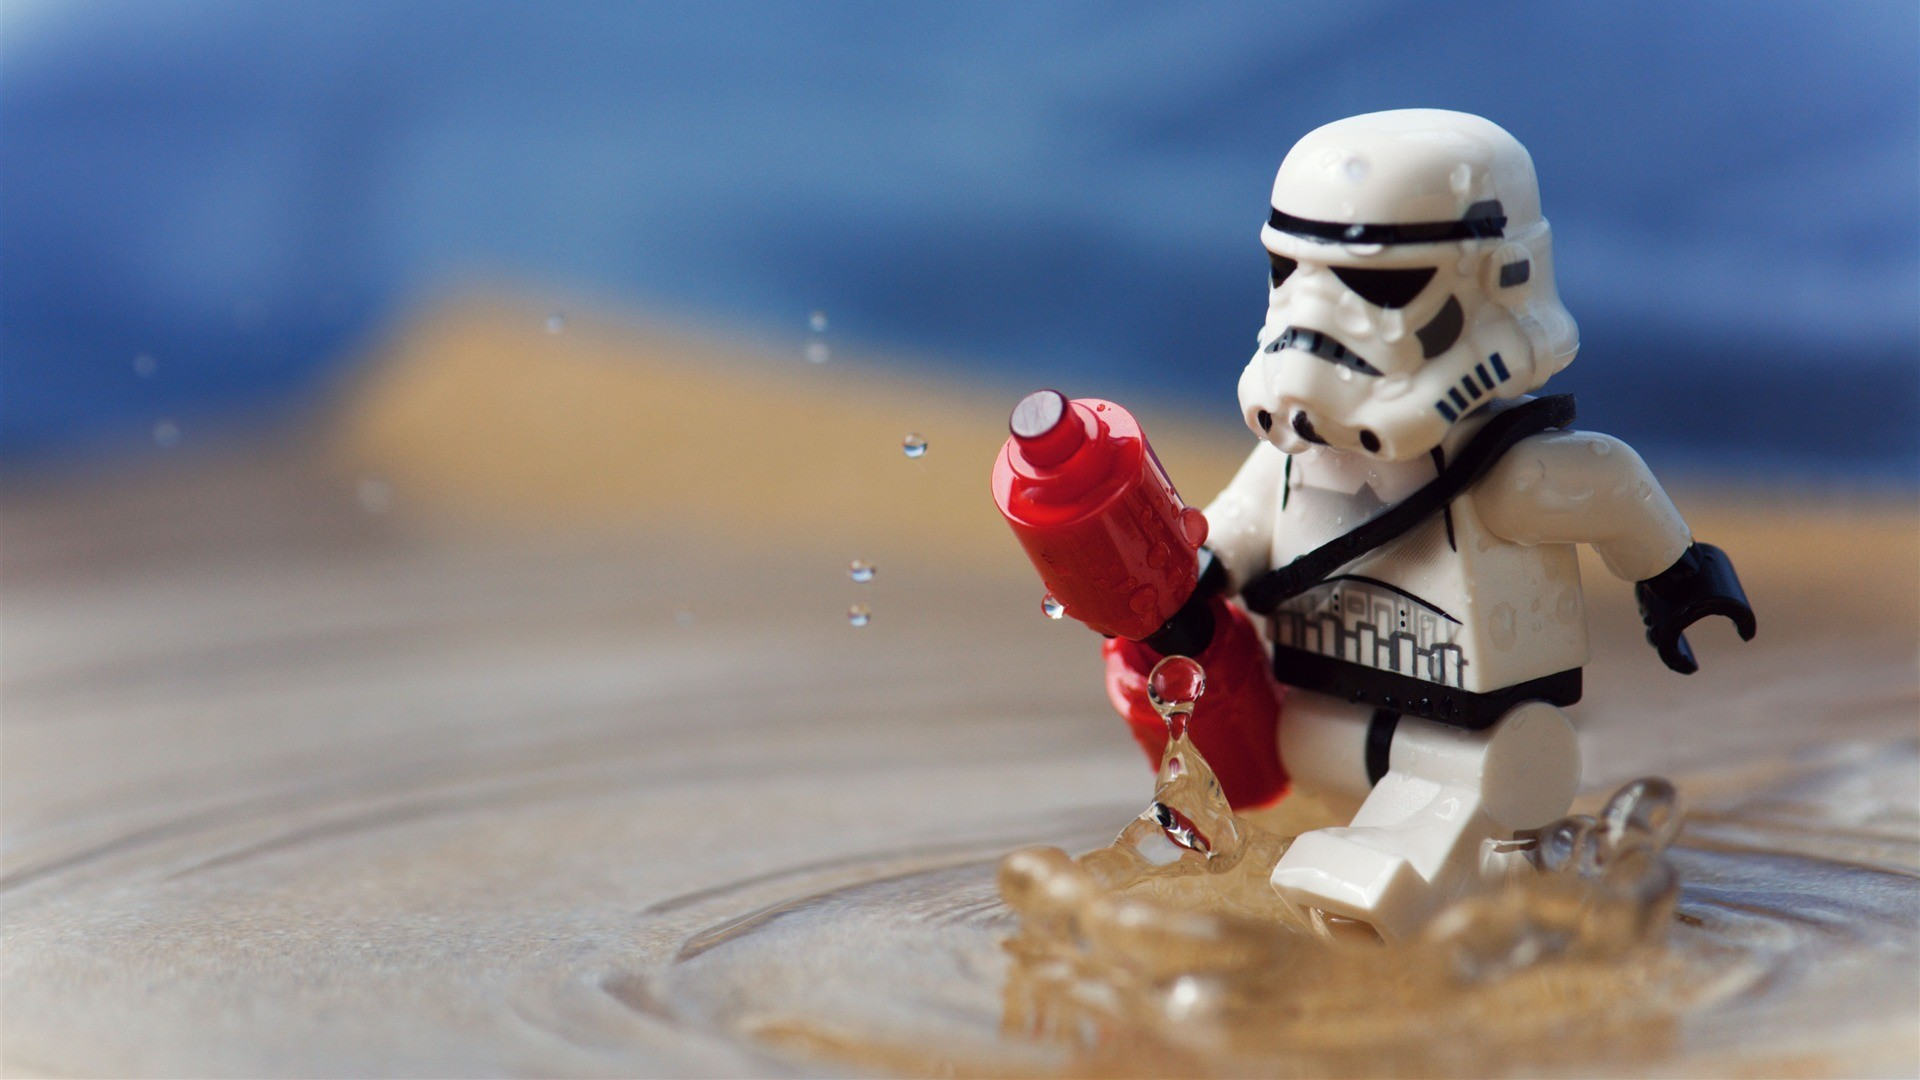 Lego Star Wars Stormtrooper Wallpaper 48986 1920x1080px